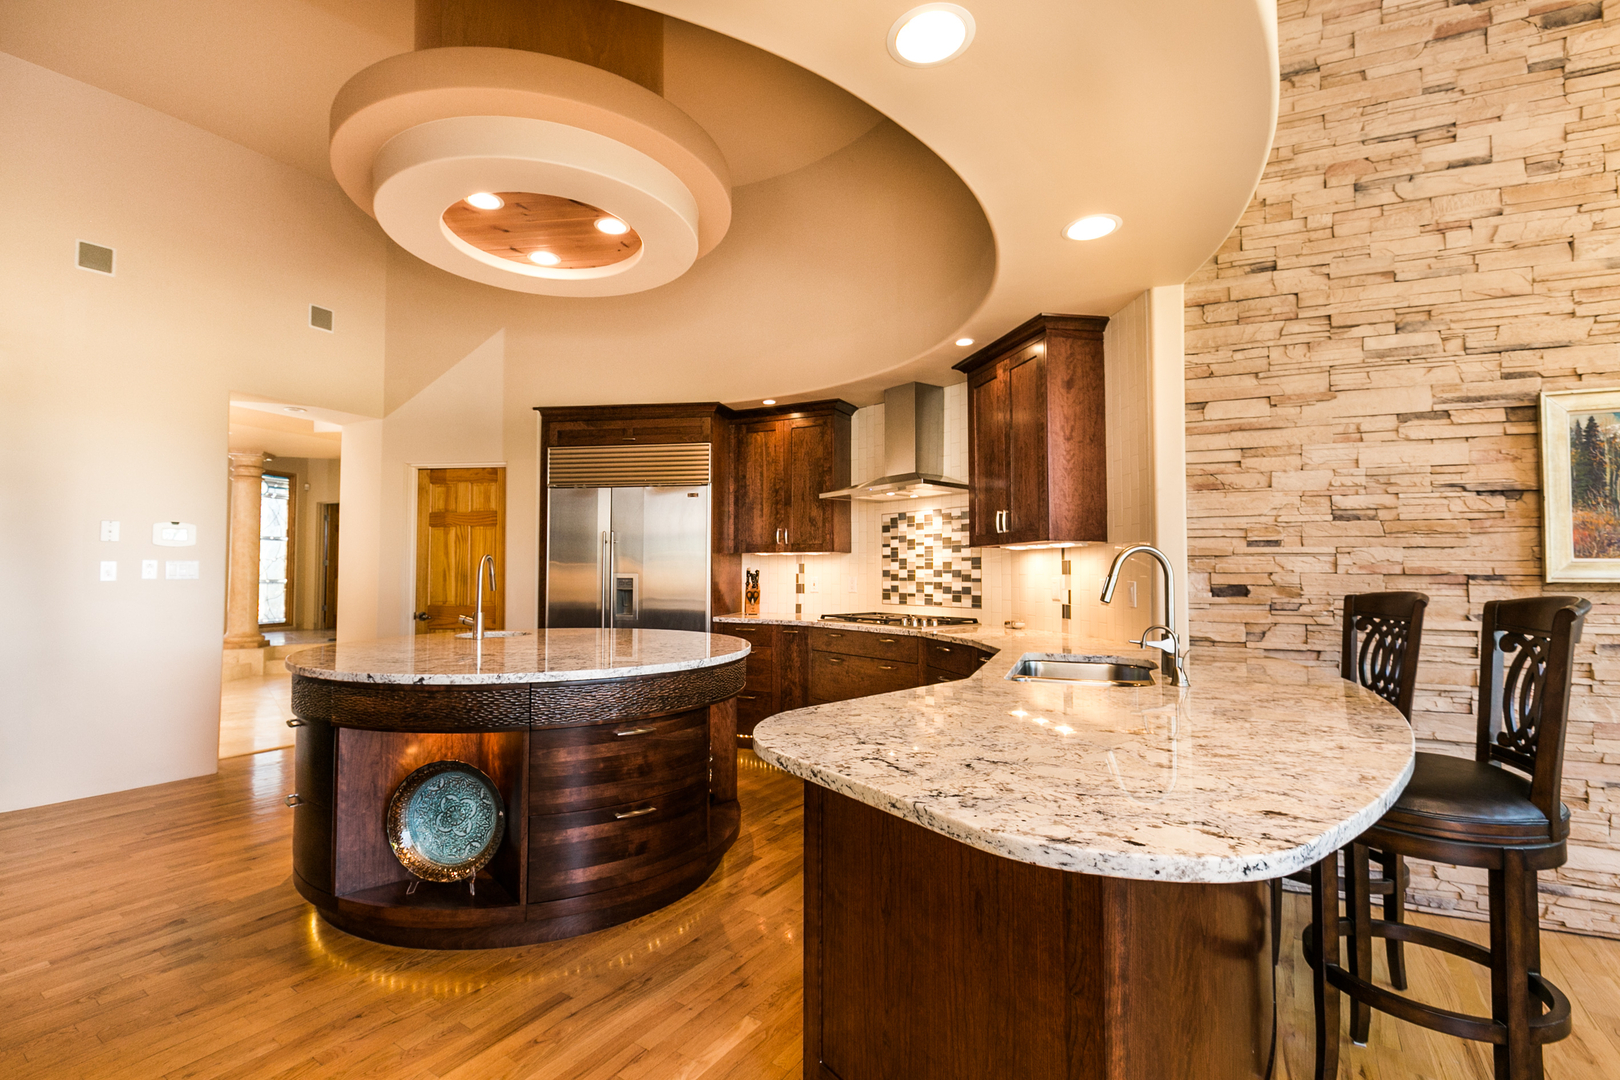 Kitchen And Bath Remodels In Albuquerque Our Work